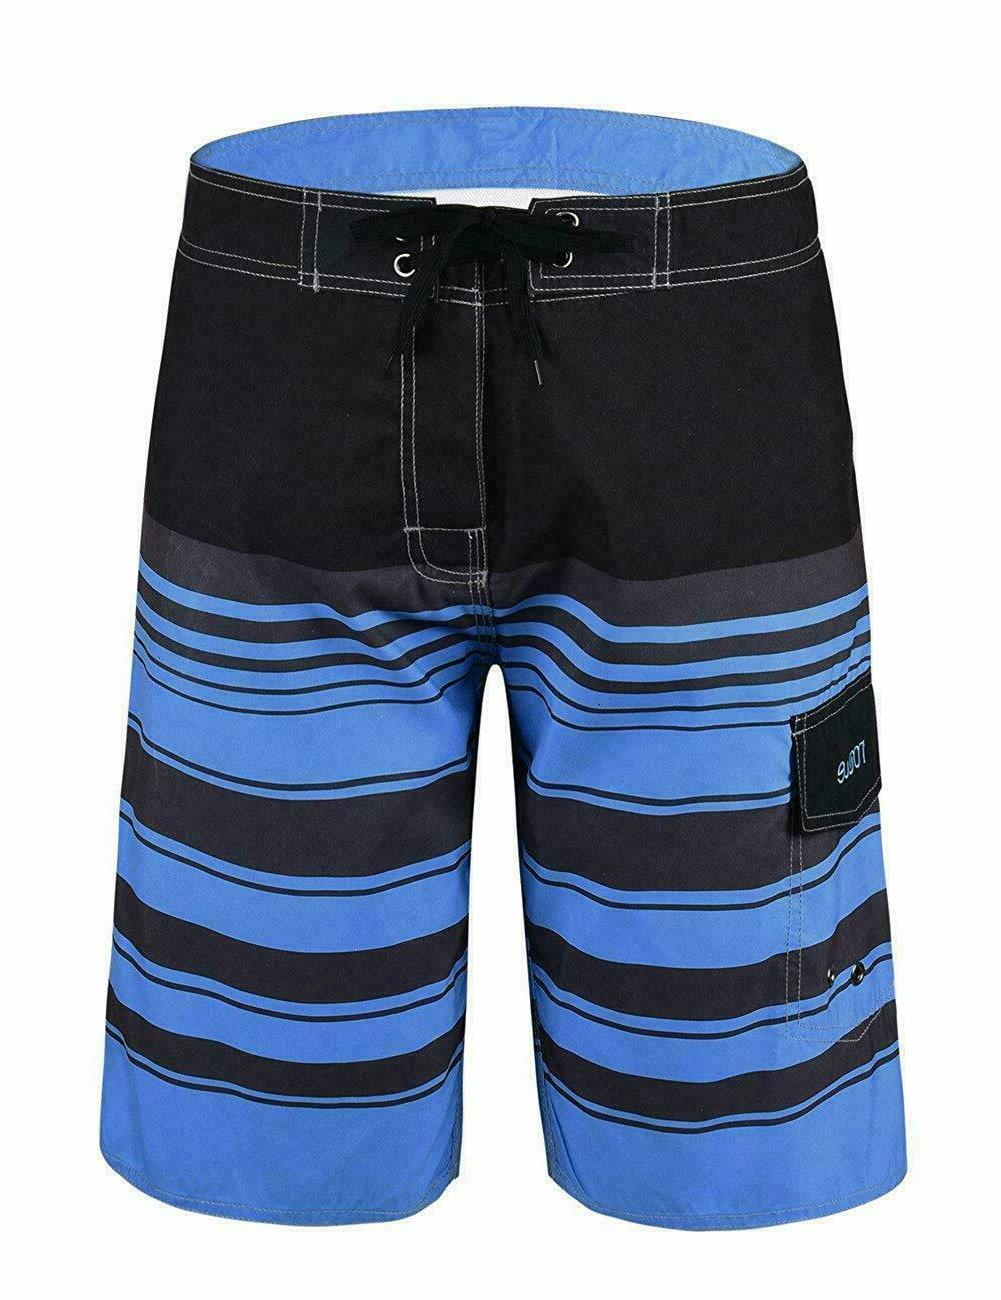 Nonwe Men'S Quick Dry Swim Trunks Colorful Stripe Beach Shor